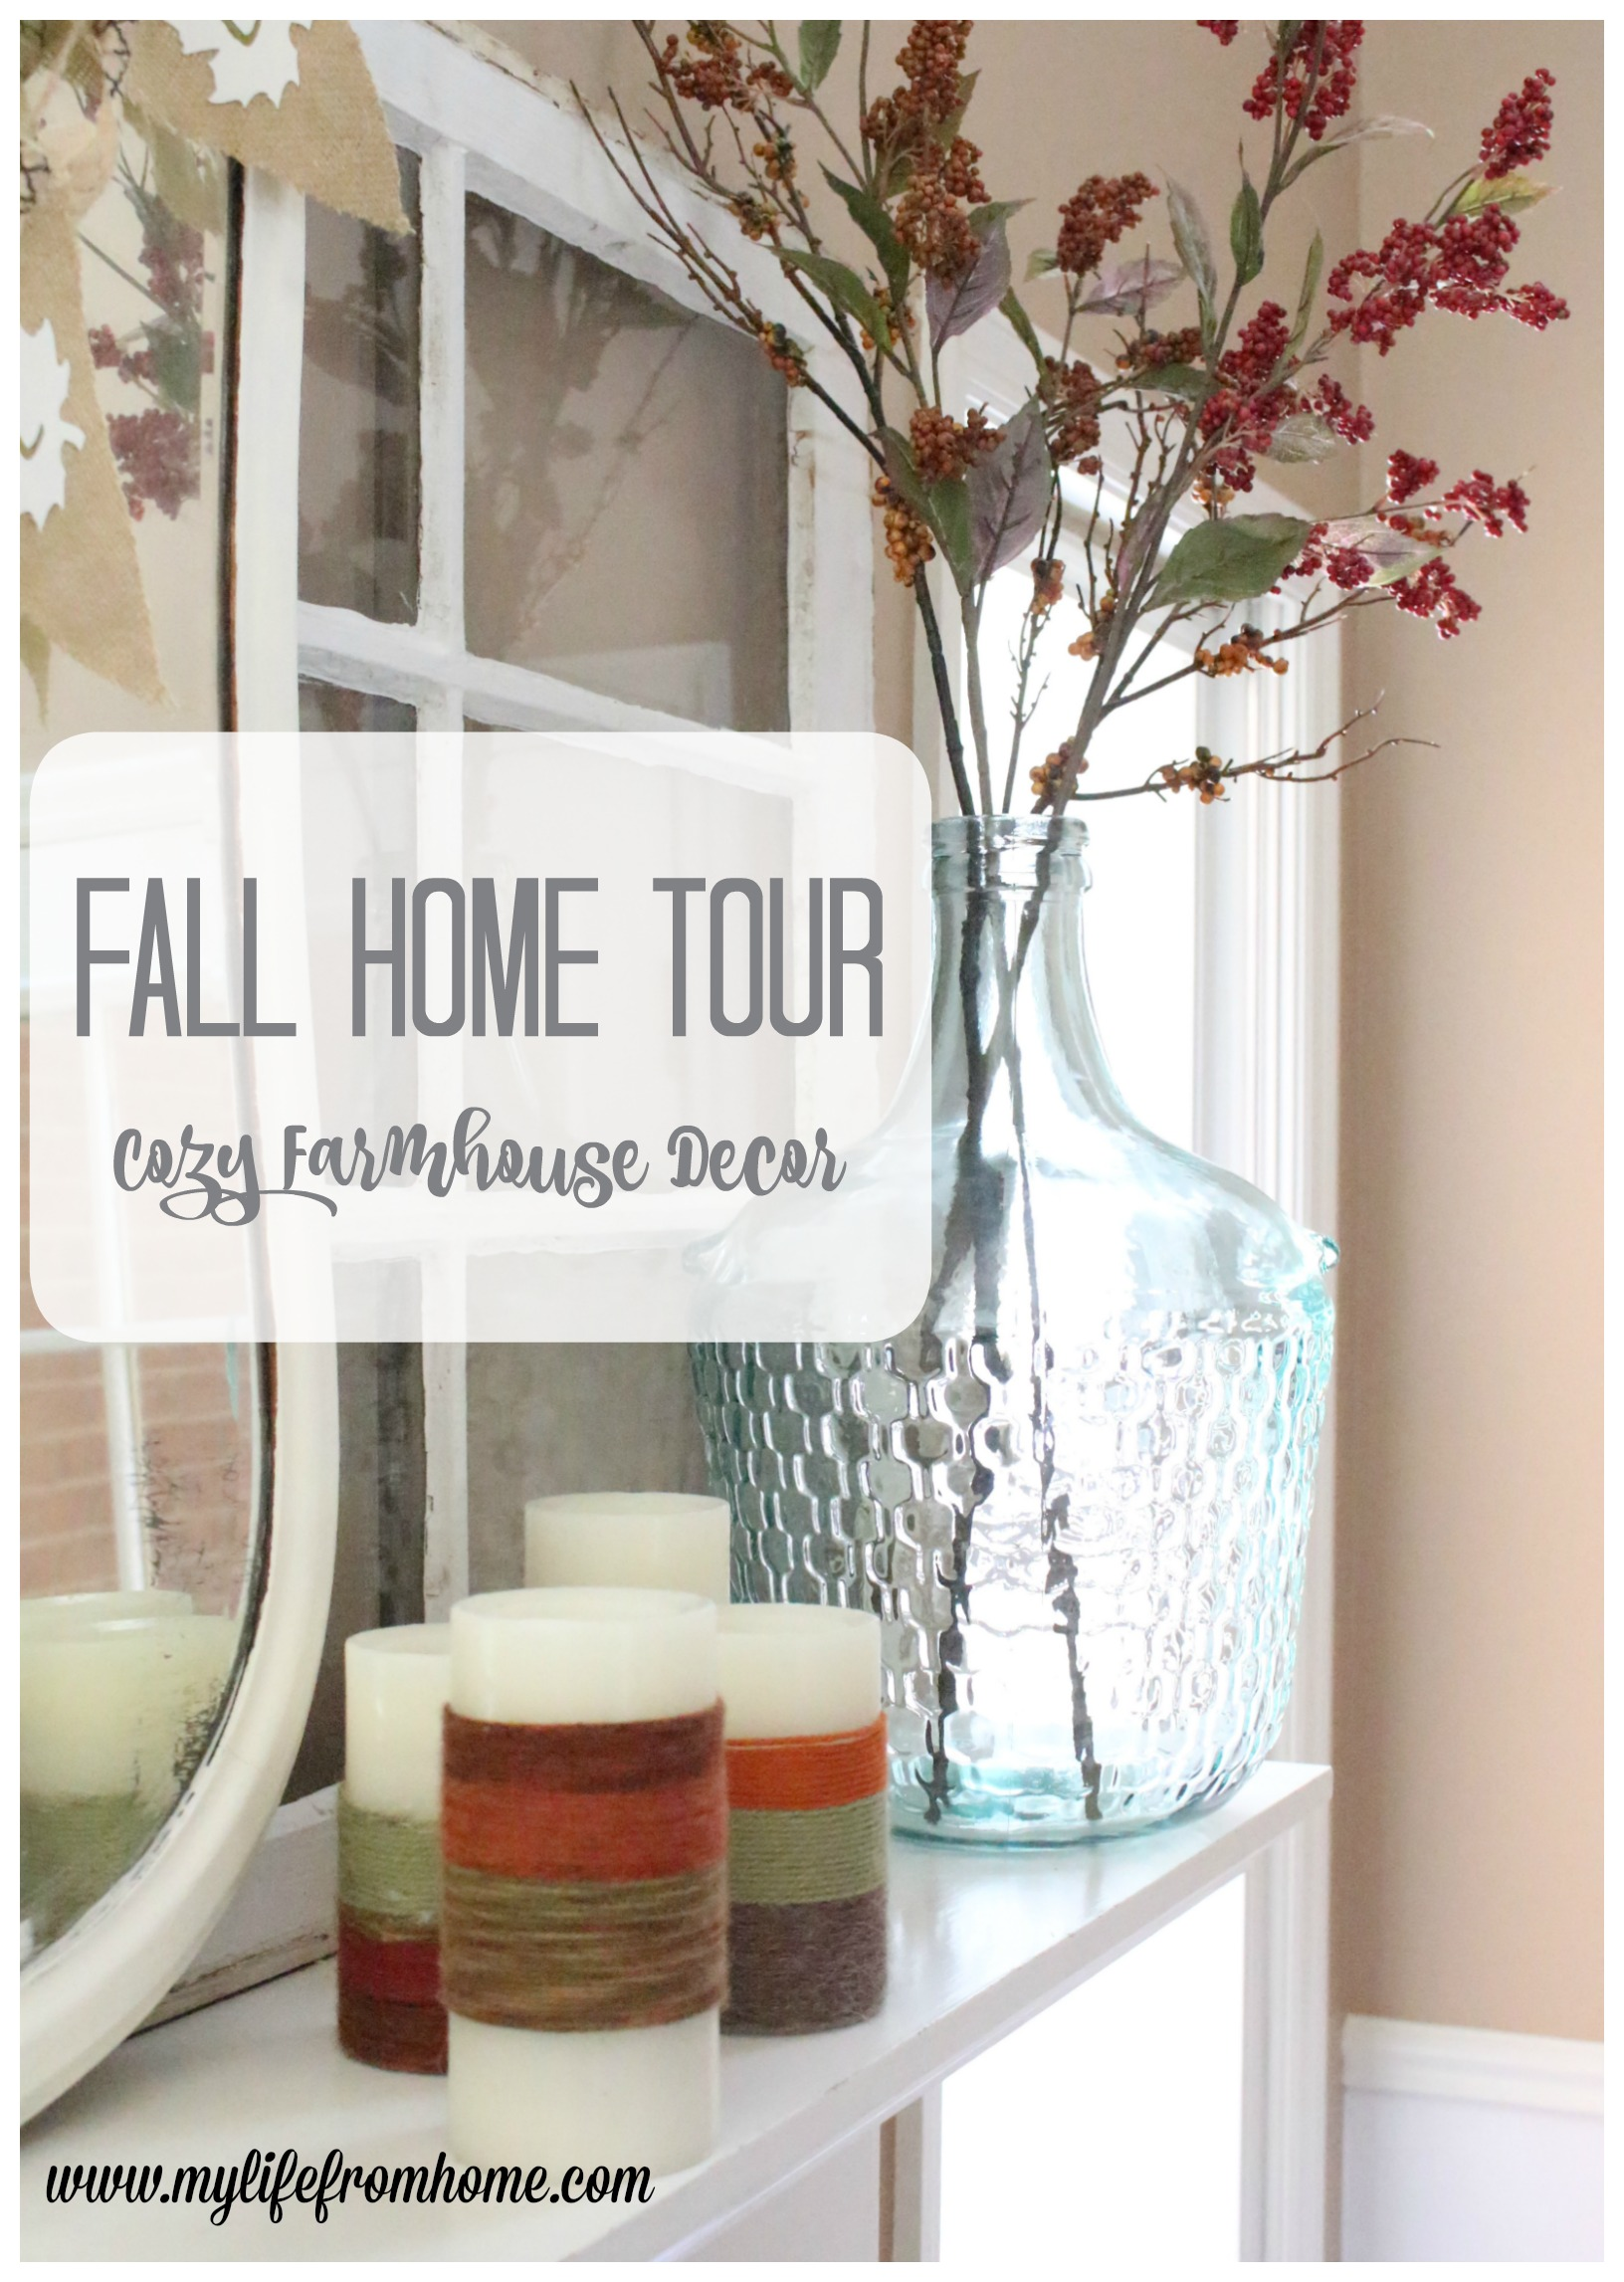 fall-home-tour-cozy-farmhouse-decor-autumn-fall-decor-seasonal-decorating-fall-decorating-decor-home-tour